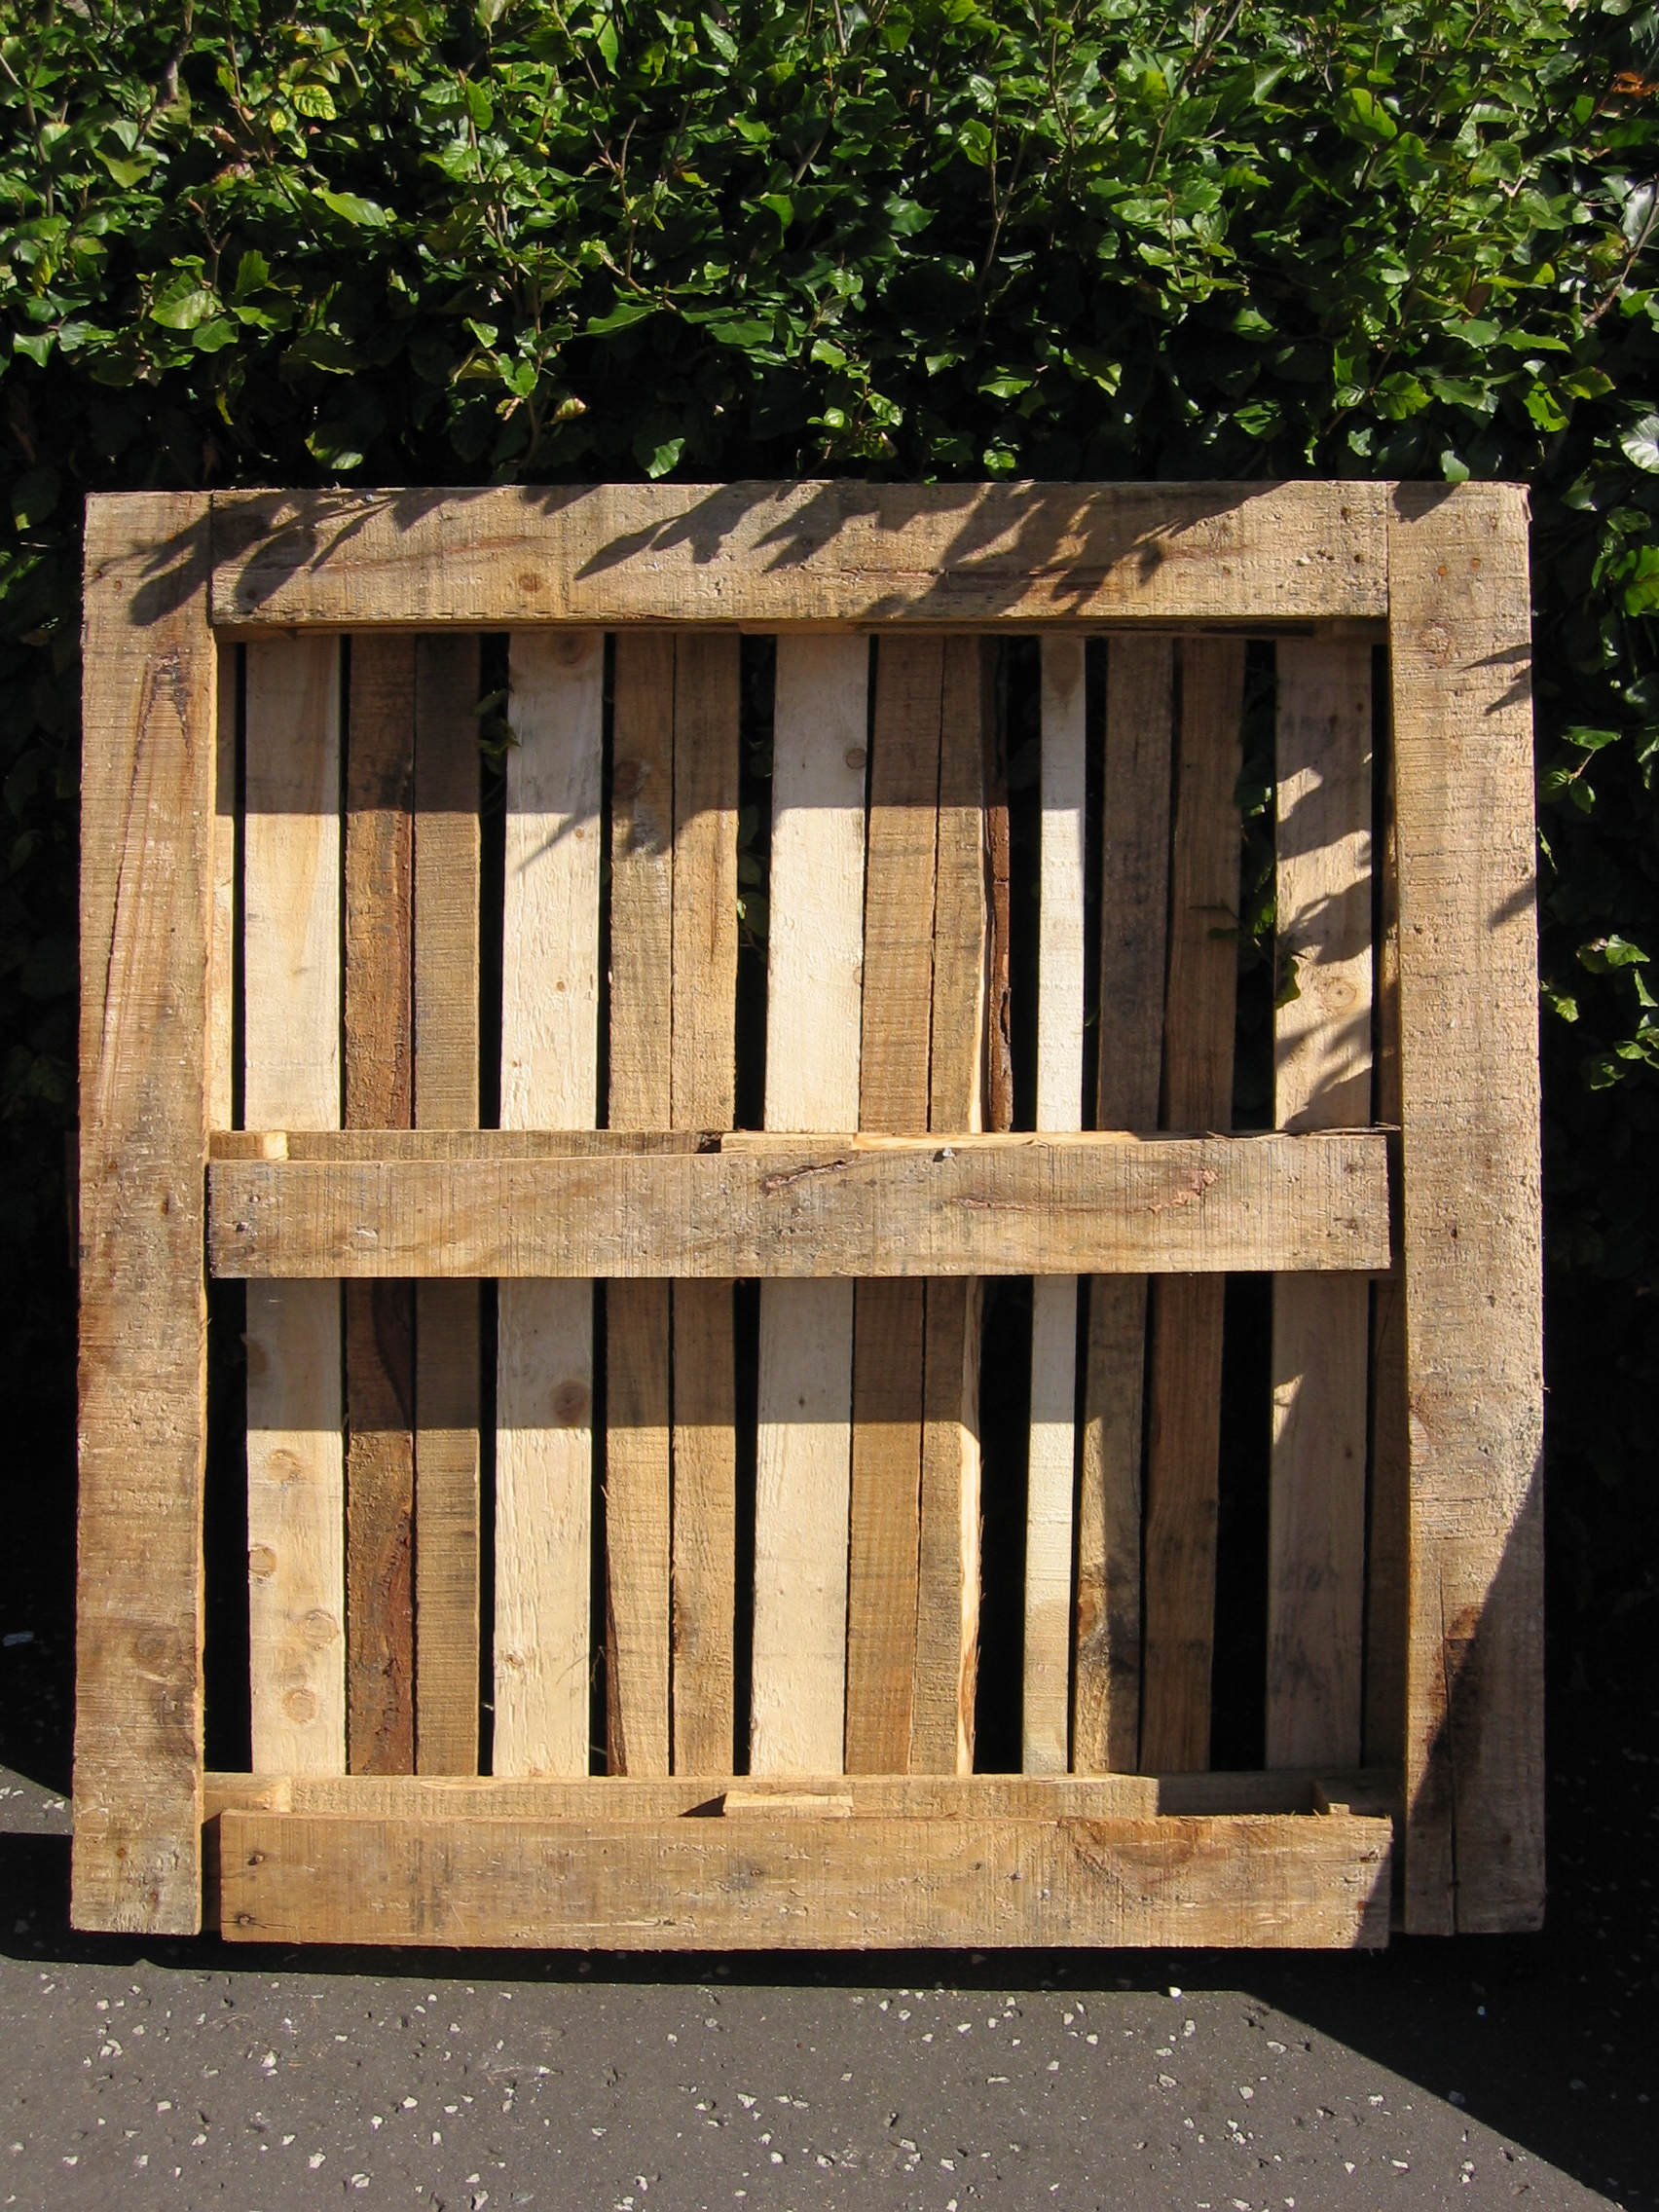 <h1>7 Amazing Uses For Wood Pallets</h1>